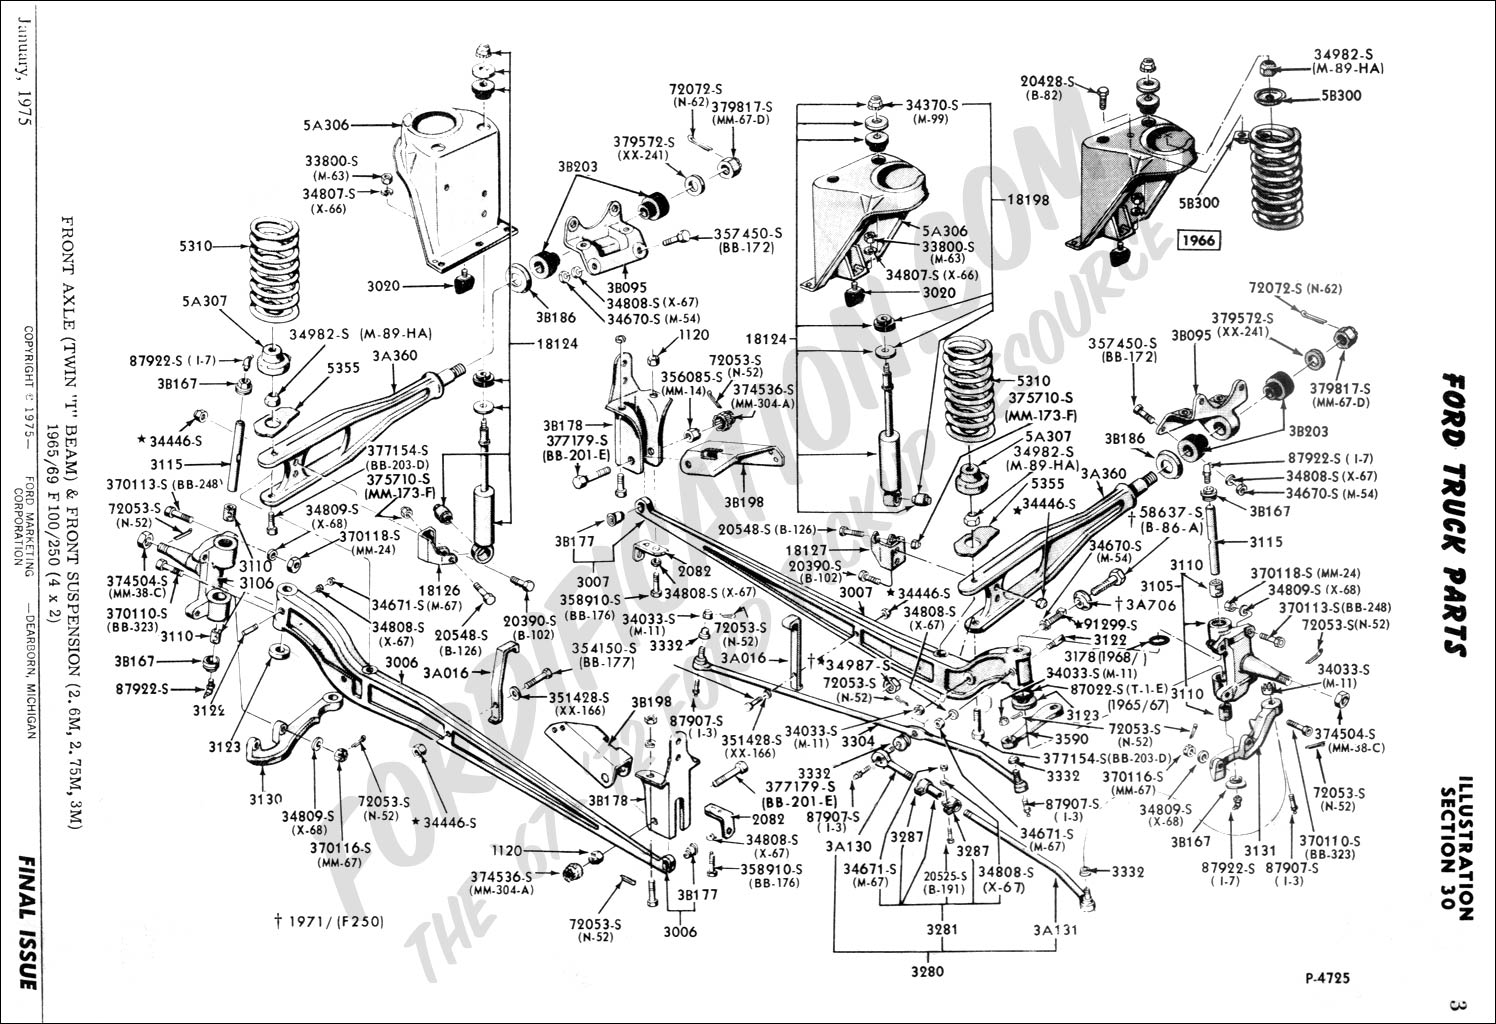 1988 ford f250 alternator wiring diagram with Ford F 350 4x4 Front Axle Diagram on Schematics i together with Showthread php together with 1119530 86 F350 Starting Problems further 99 CIVIC WIRING DIAGRAM COURTESY LIGHTS L21935 in addition 1989 Ford F350 Wiring Diagram Color Code.